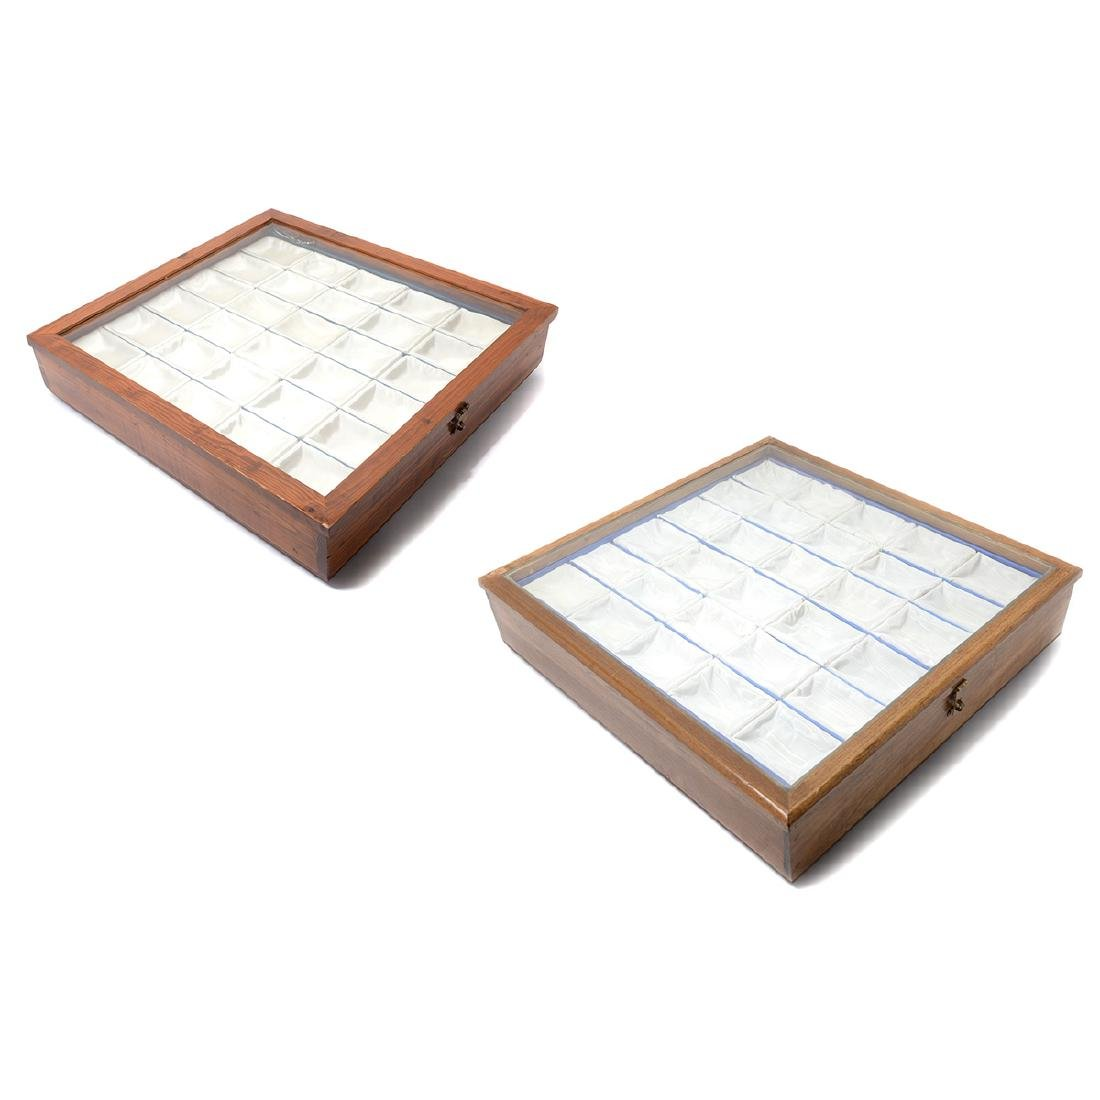 Two Snuff Bottle Display Cases & Literature on Snuff